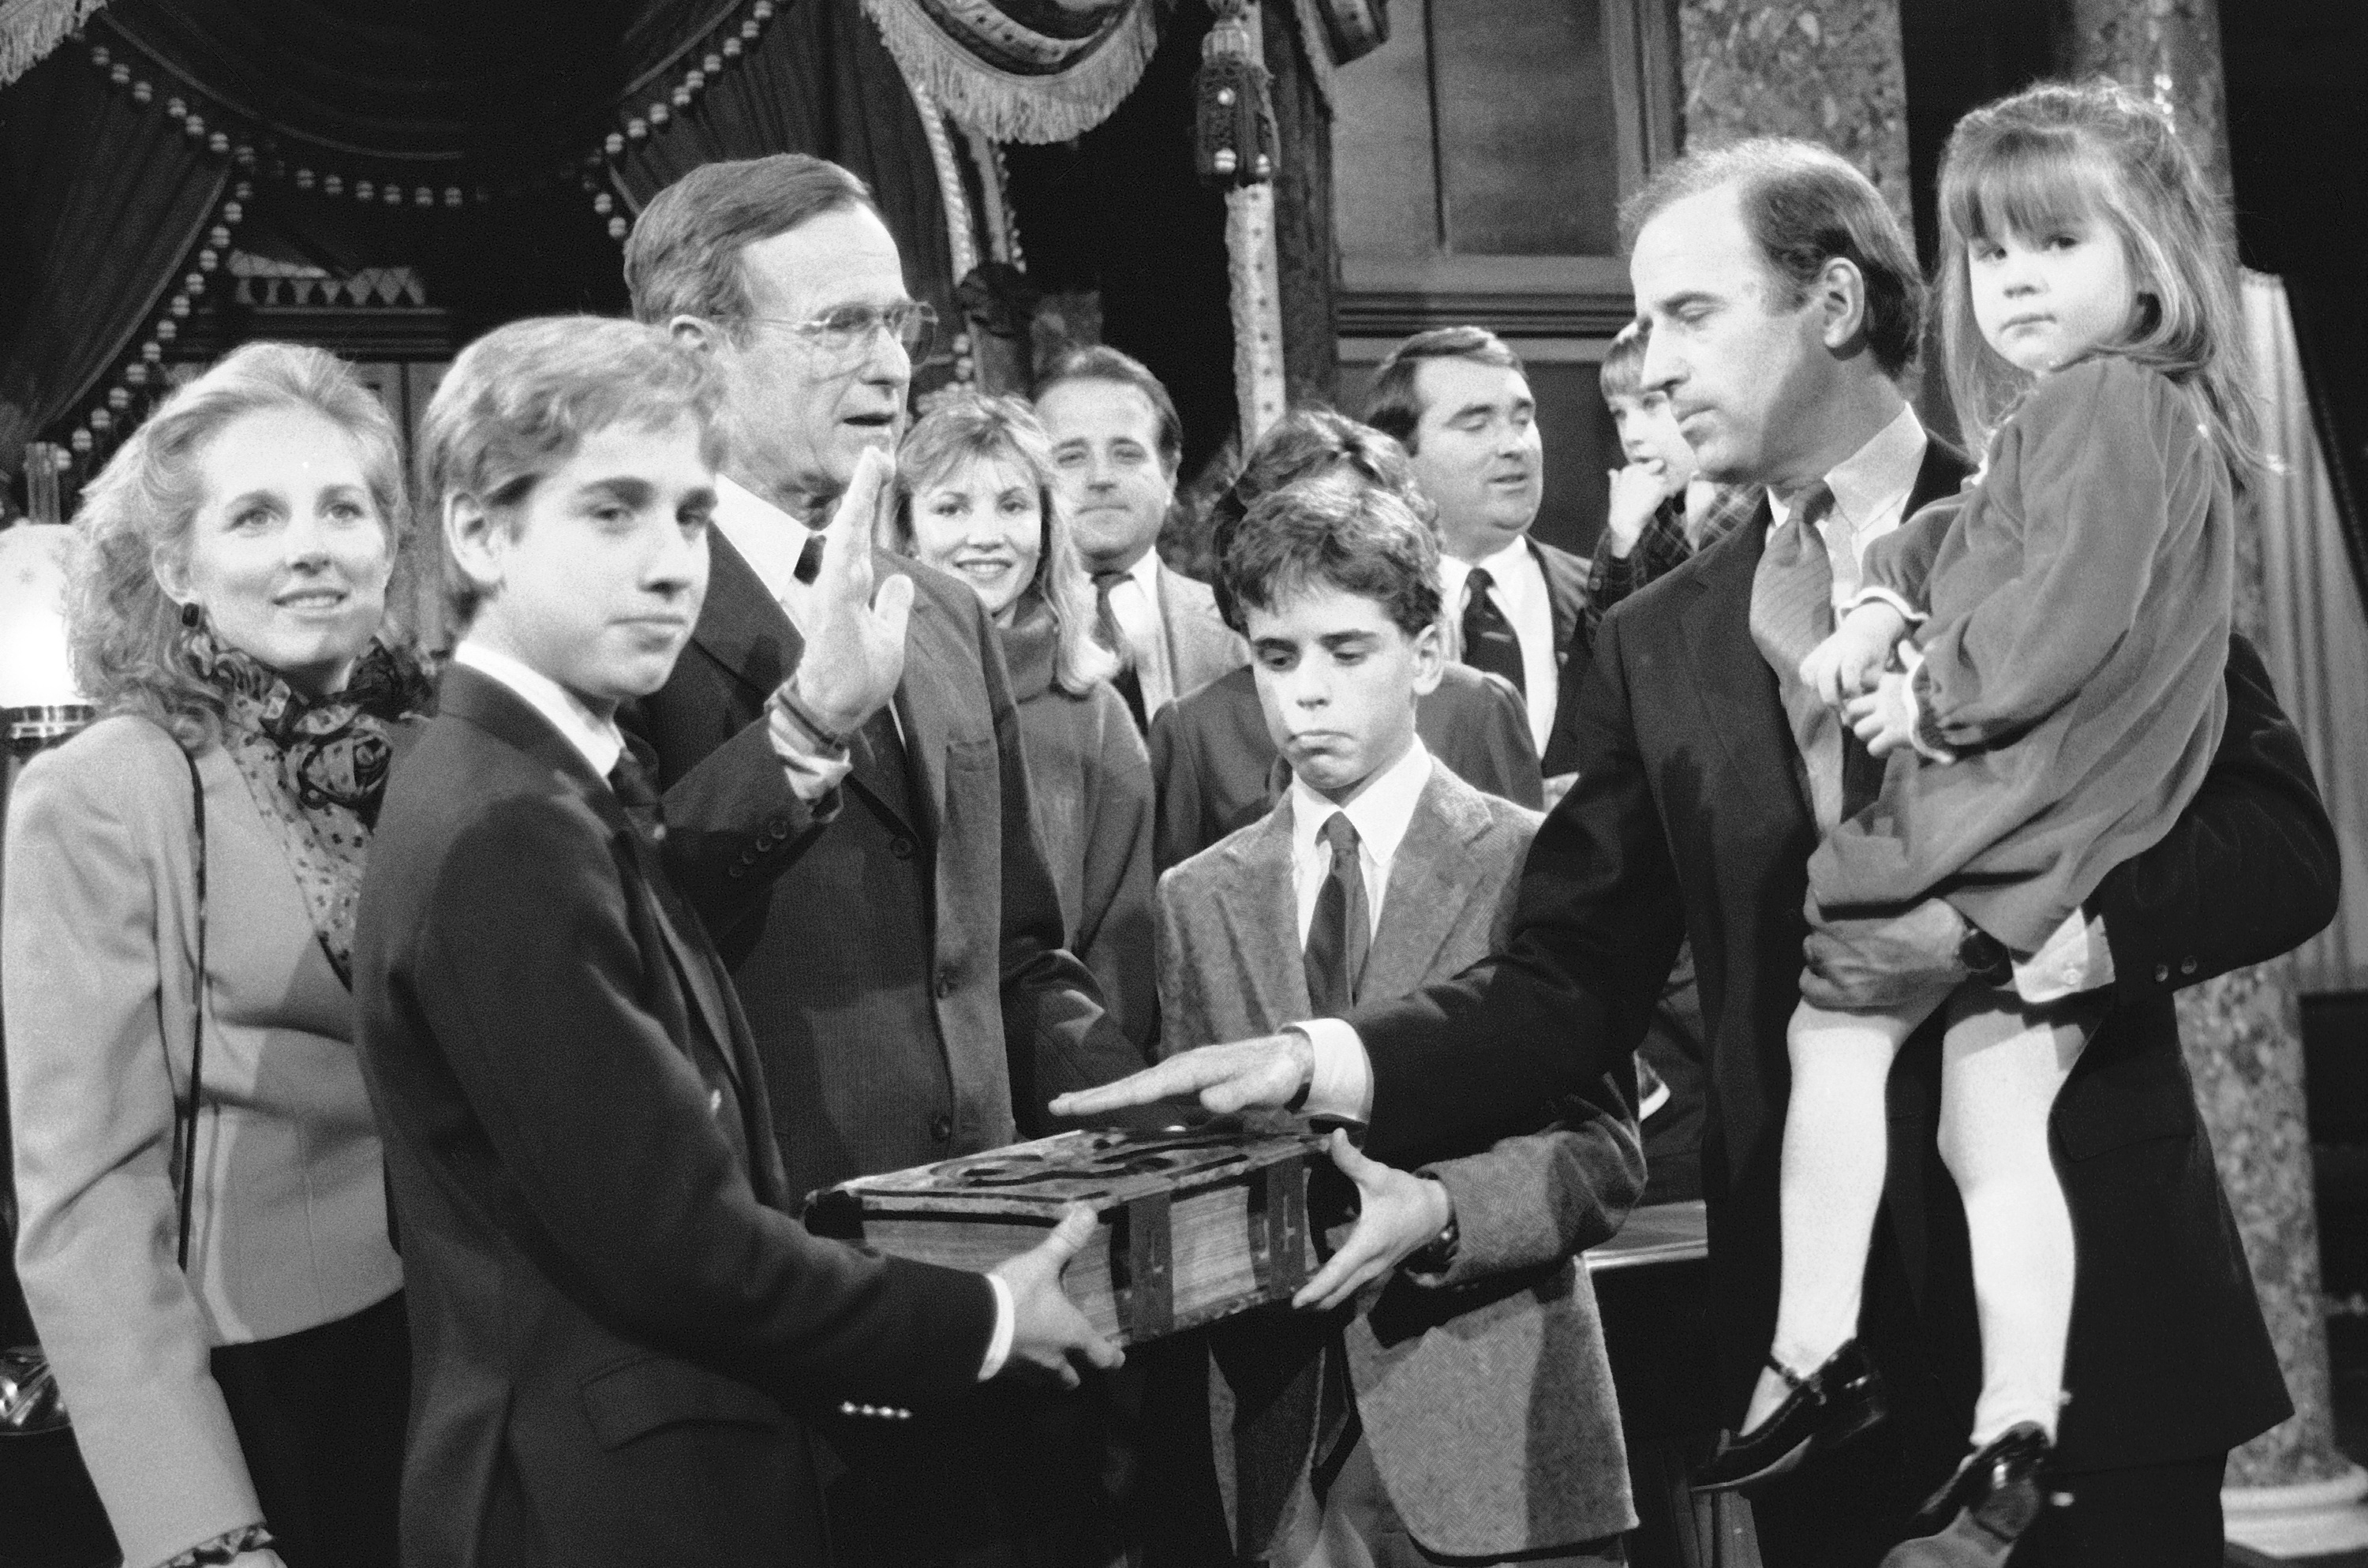 Joe Biden takes a mock oath of office from George H. W. Bush, accompanied by his family in Capitol Hill in Washington on Jan. 3, 1985.